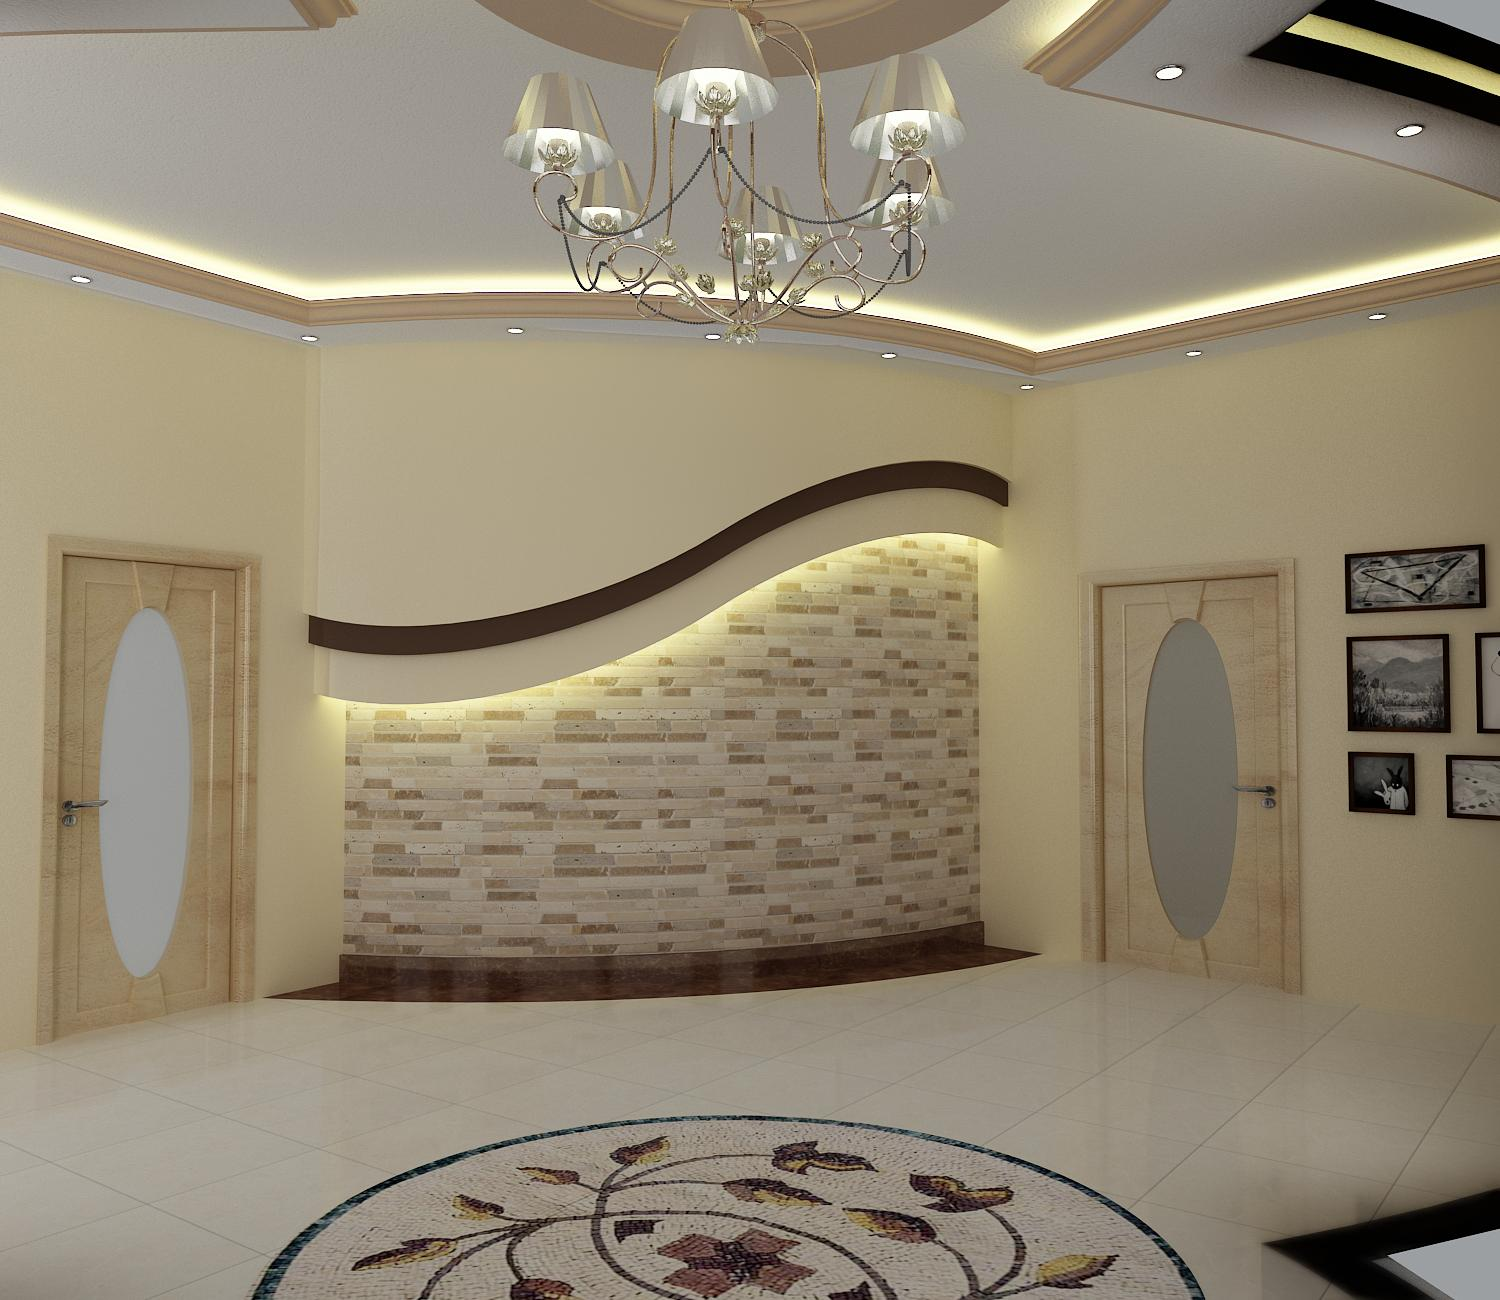 Wasim riaz interior design for a arabic mujlis for Interior designs photos